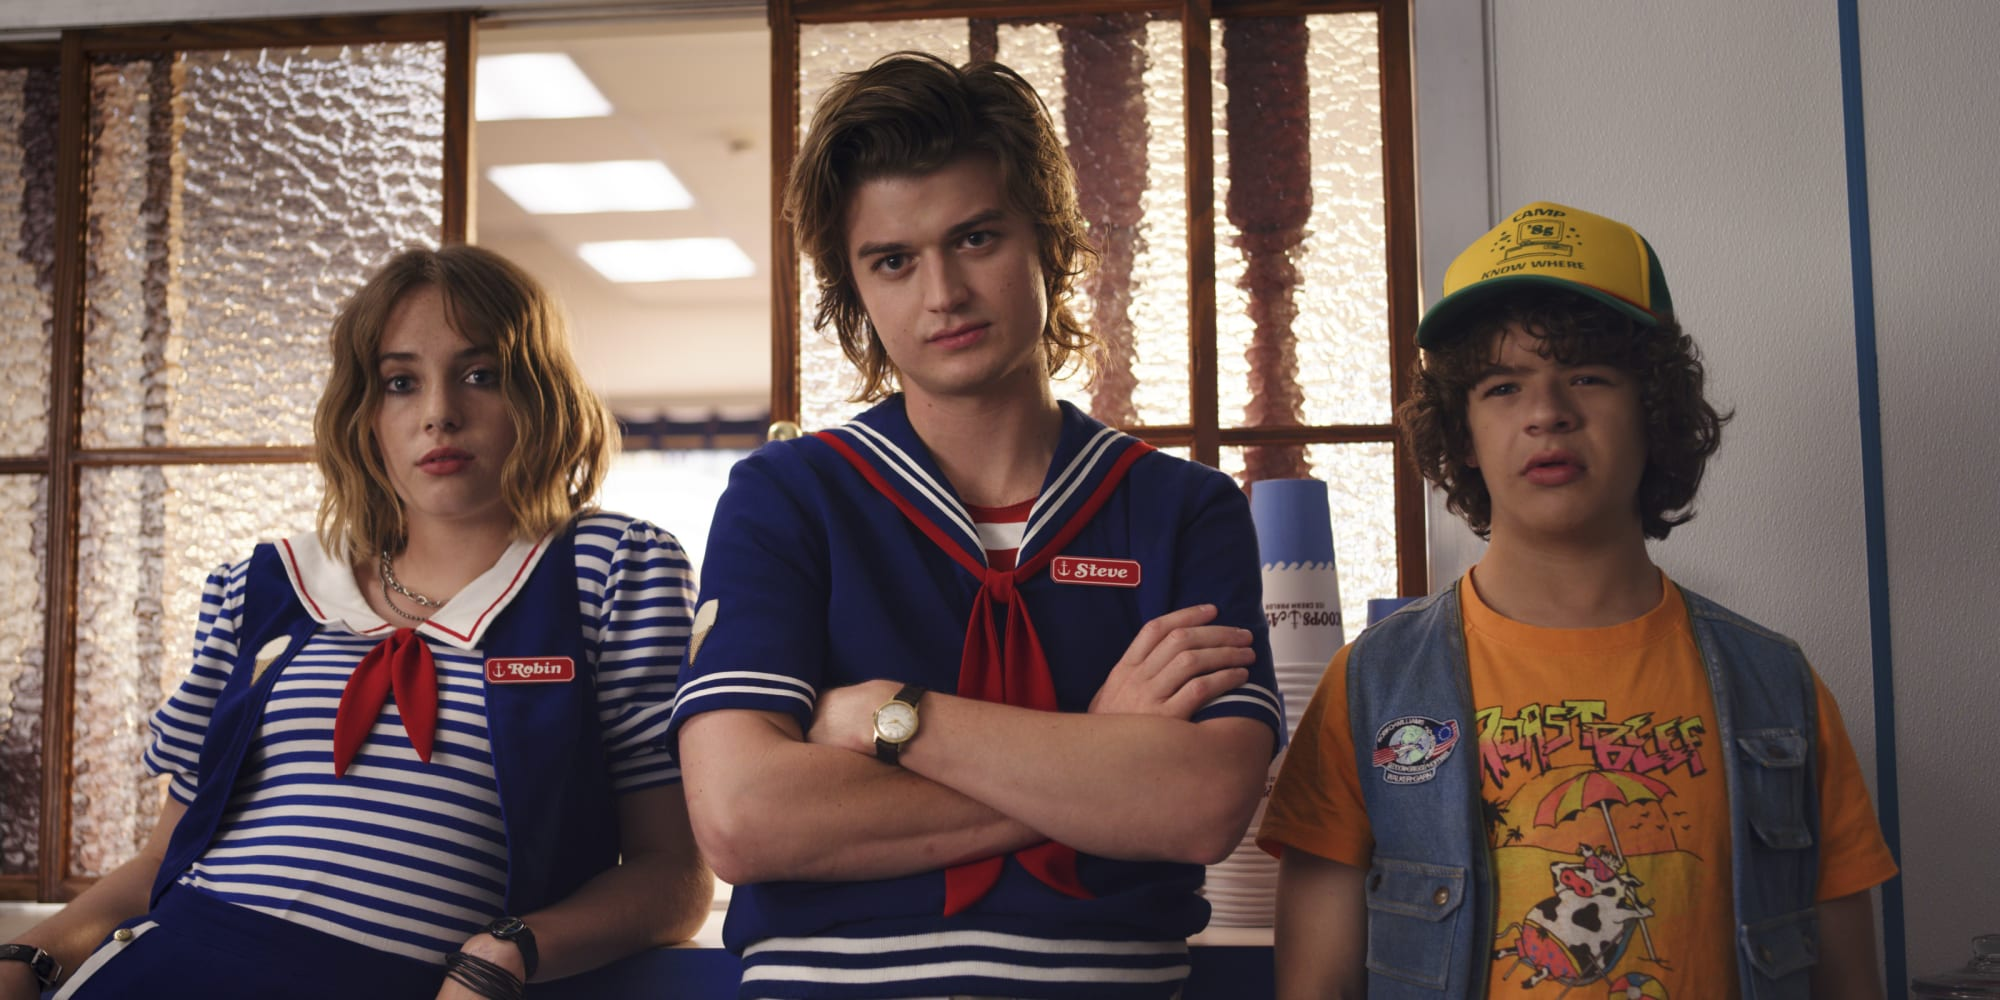 11 Netflix shows to watch if you like Stranger Things